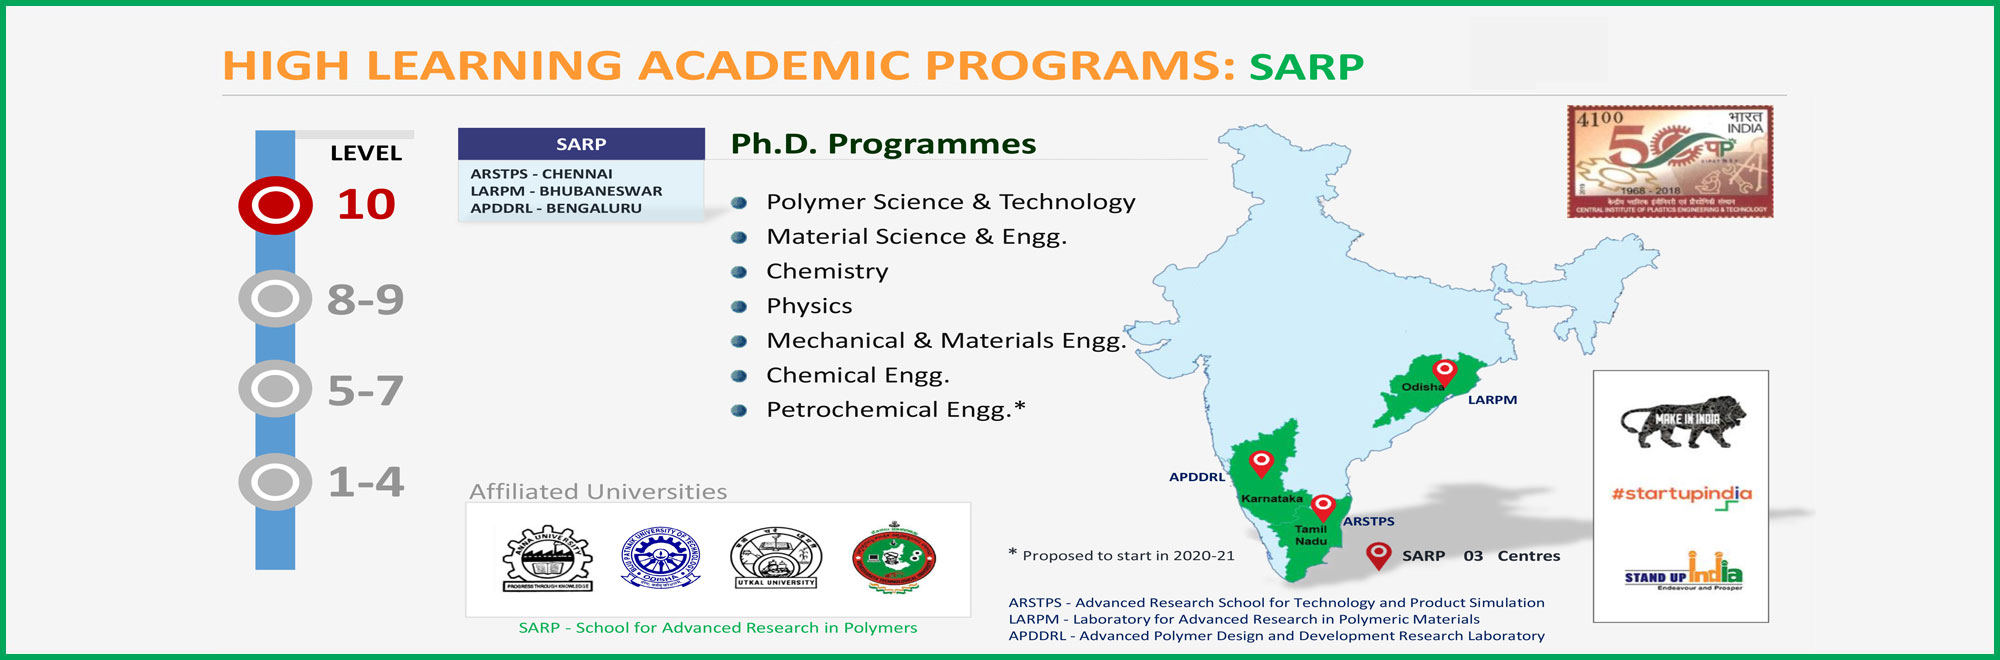 HIGH LEARNING ACADEMIC PROGRAMS: SARP